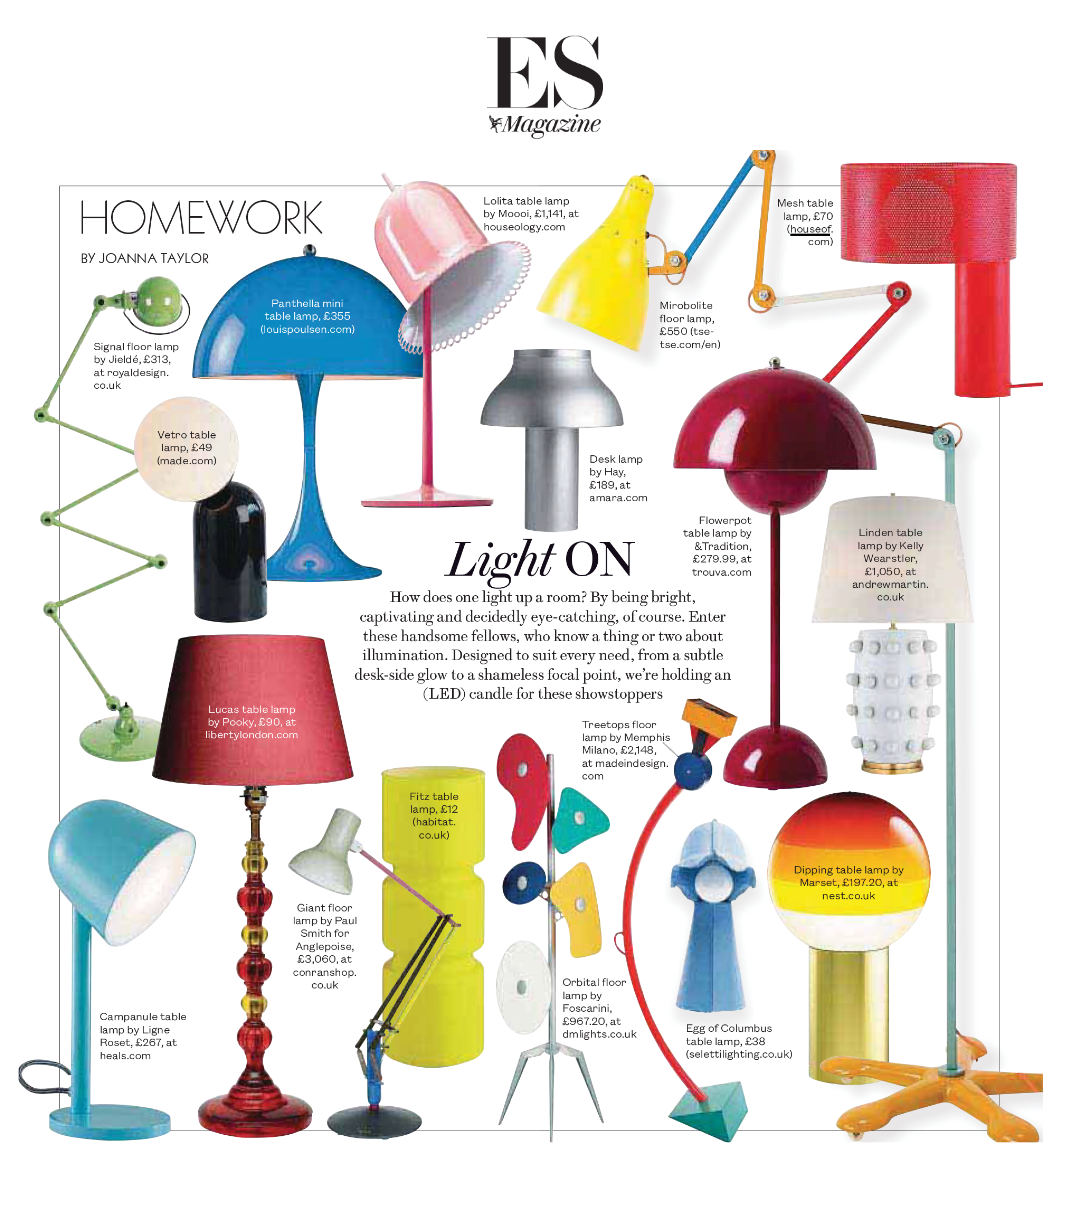 houseof-press-img-1019-evening-standard-mesh-table-lamp-coral